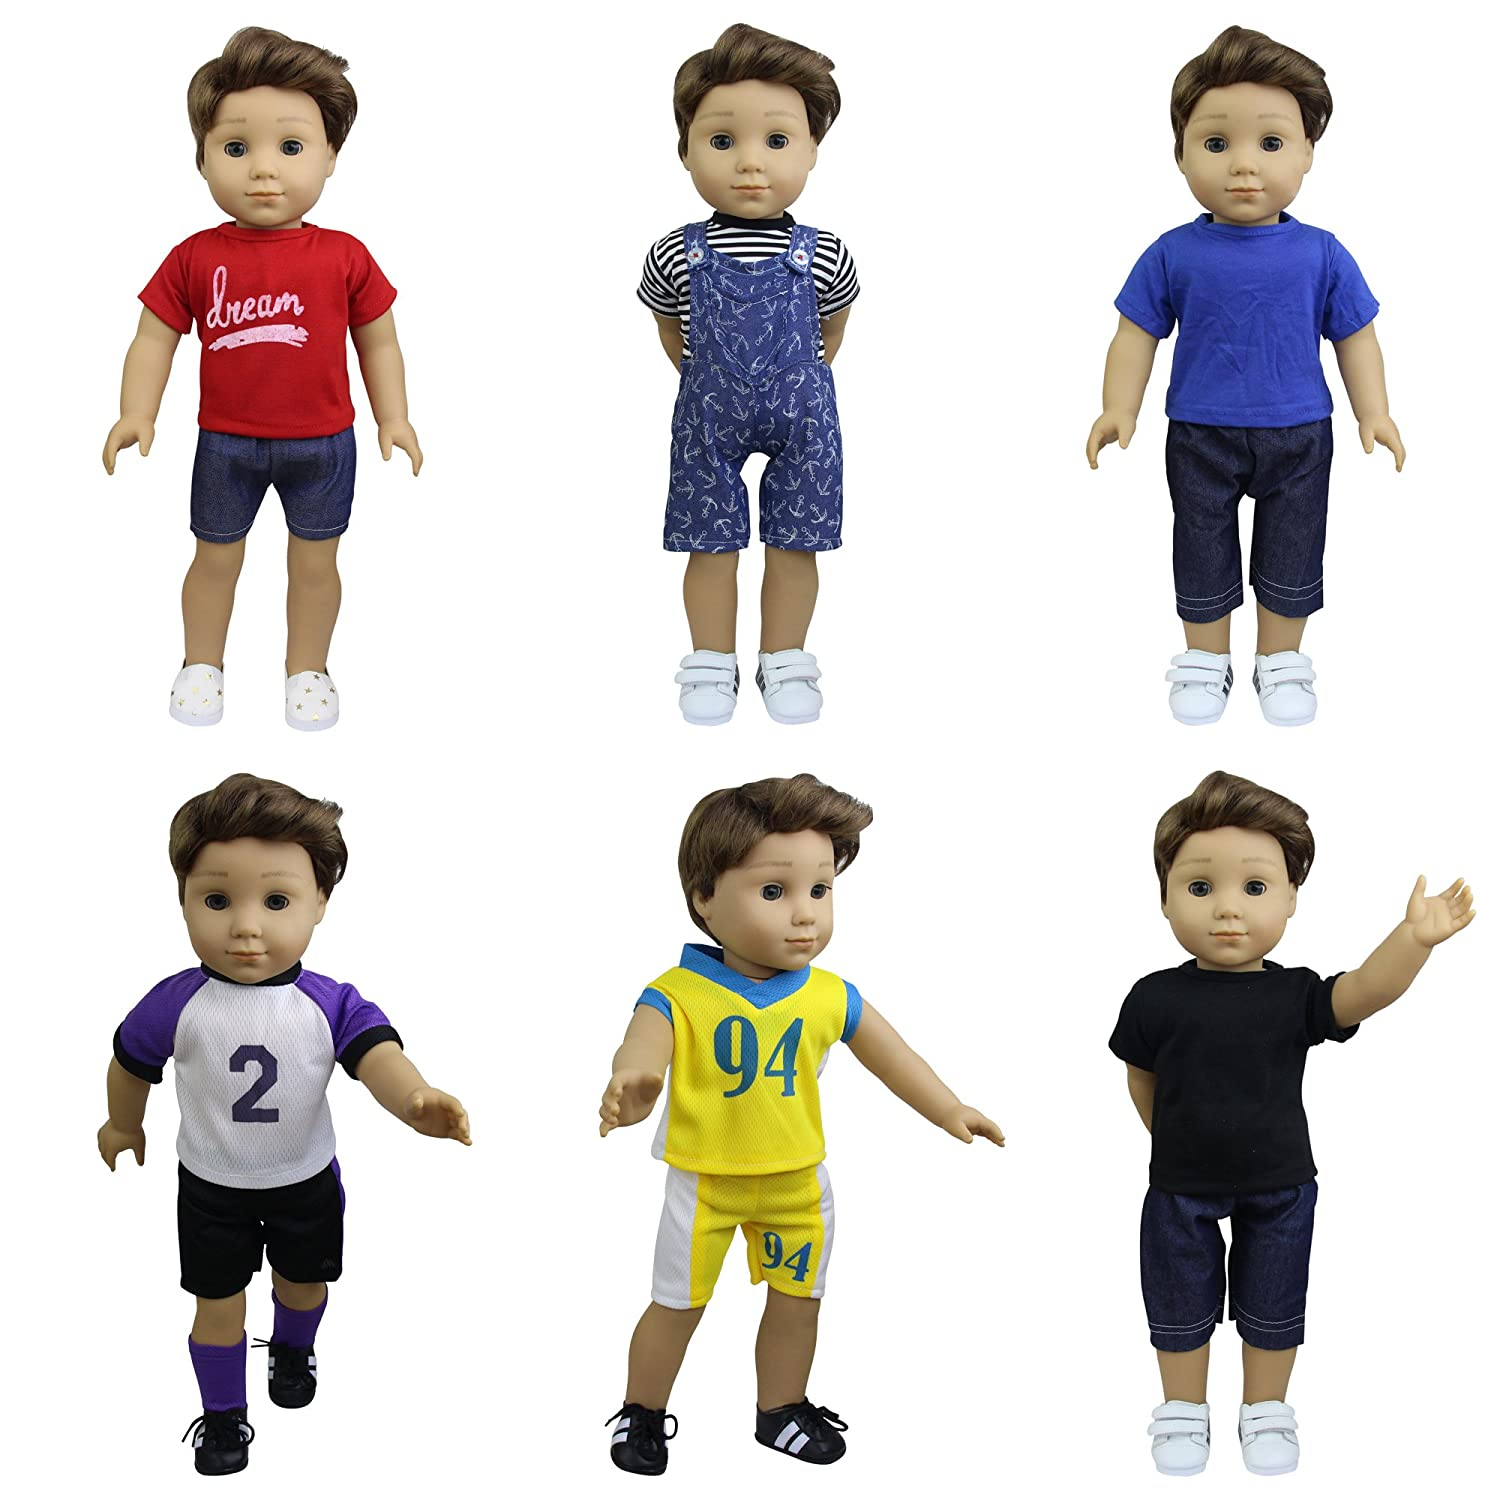 ZITA ELEMENT 6 Sets American Boy Clothes | Logan Outfits for 18 Inch Doll, Multi-Colored 18 Inch and Similar Sized